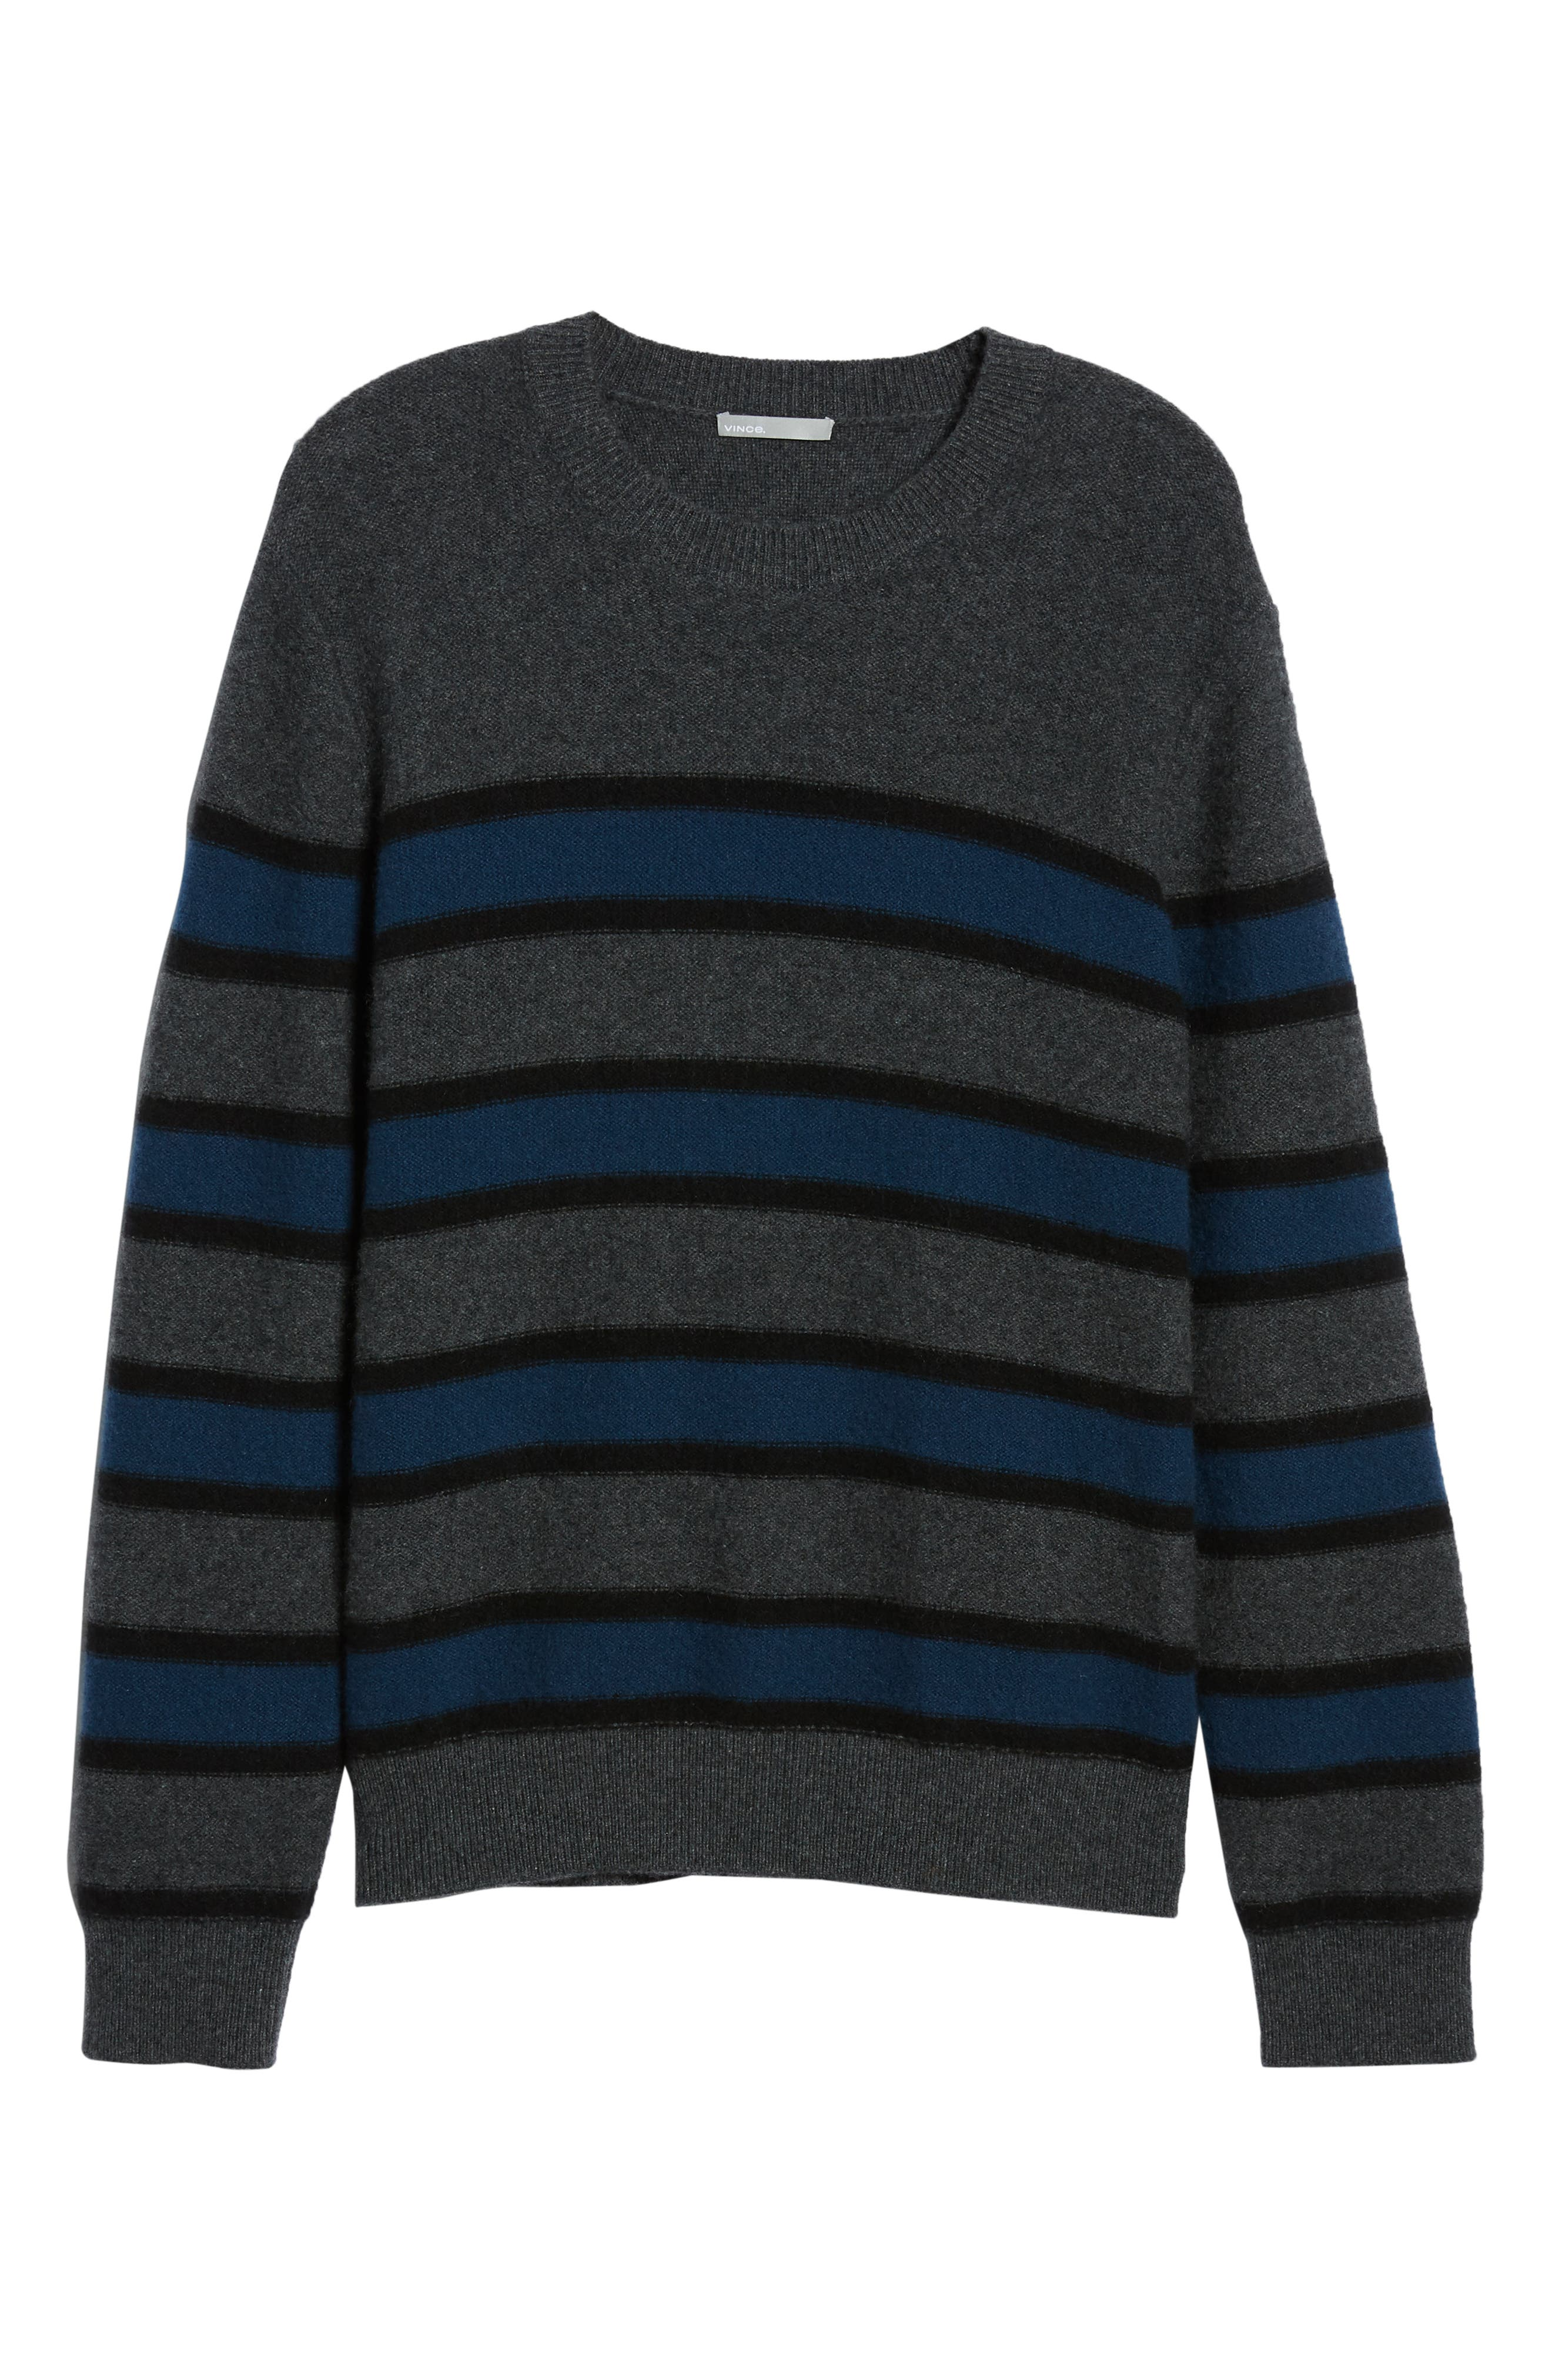 Regular Fit Stripe Cashmere Sweater,                             Alternate thumbnail 6, color,                             DARK HEATHER GREY/BLUE